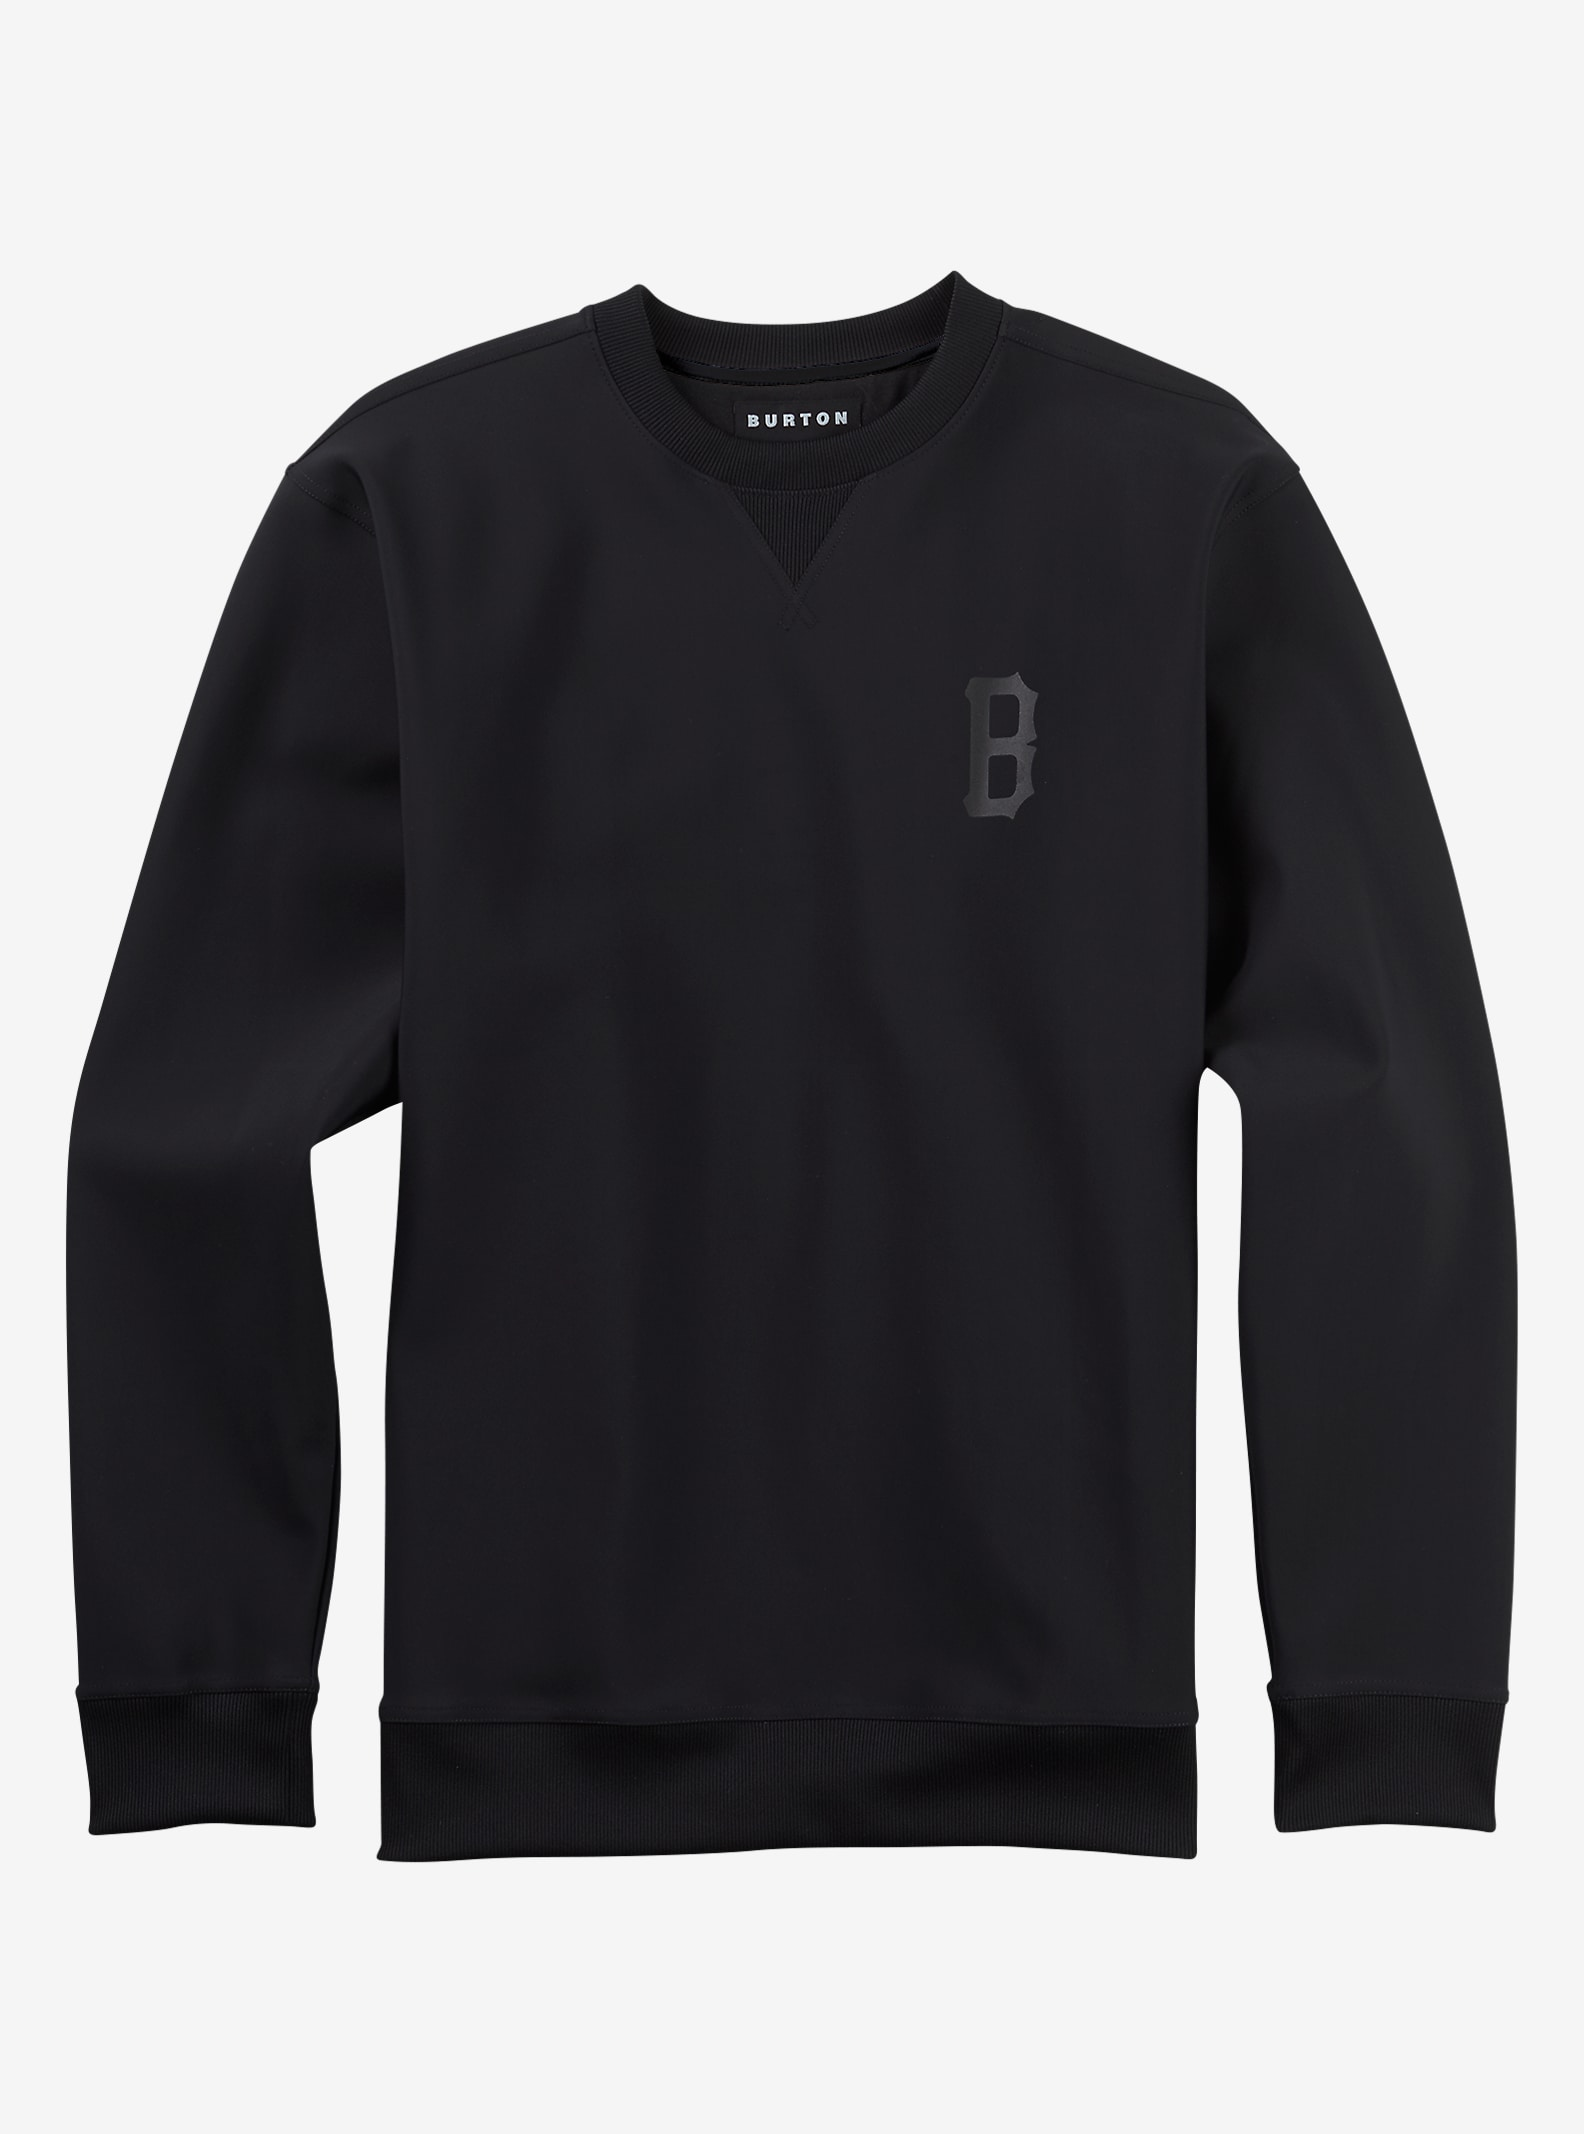 Black Scale x Burton - Ras-du-cou de base Surrender affichage en Black Scale Black